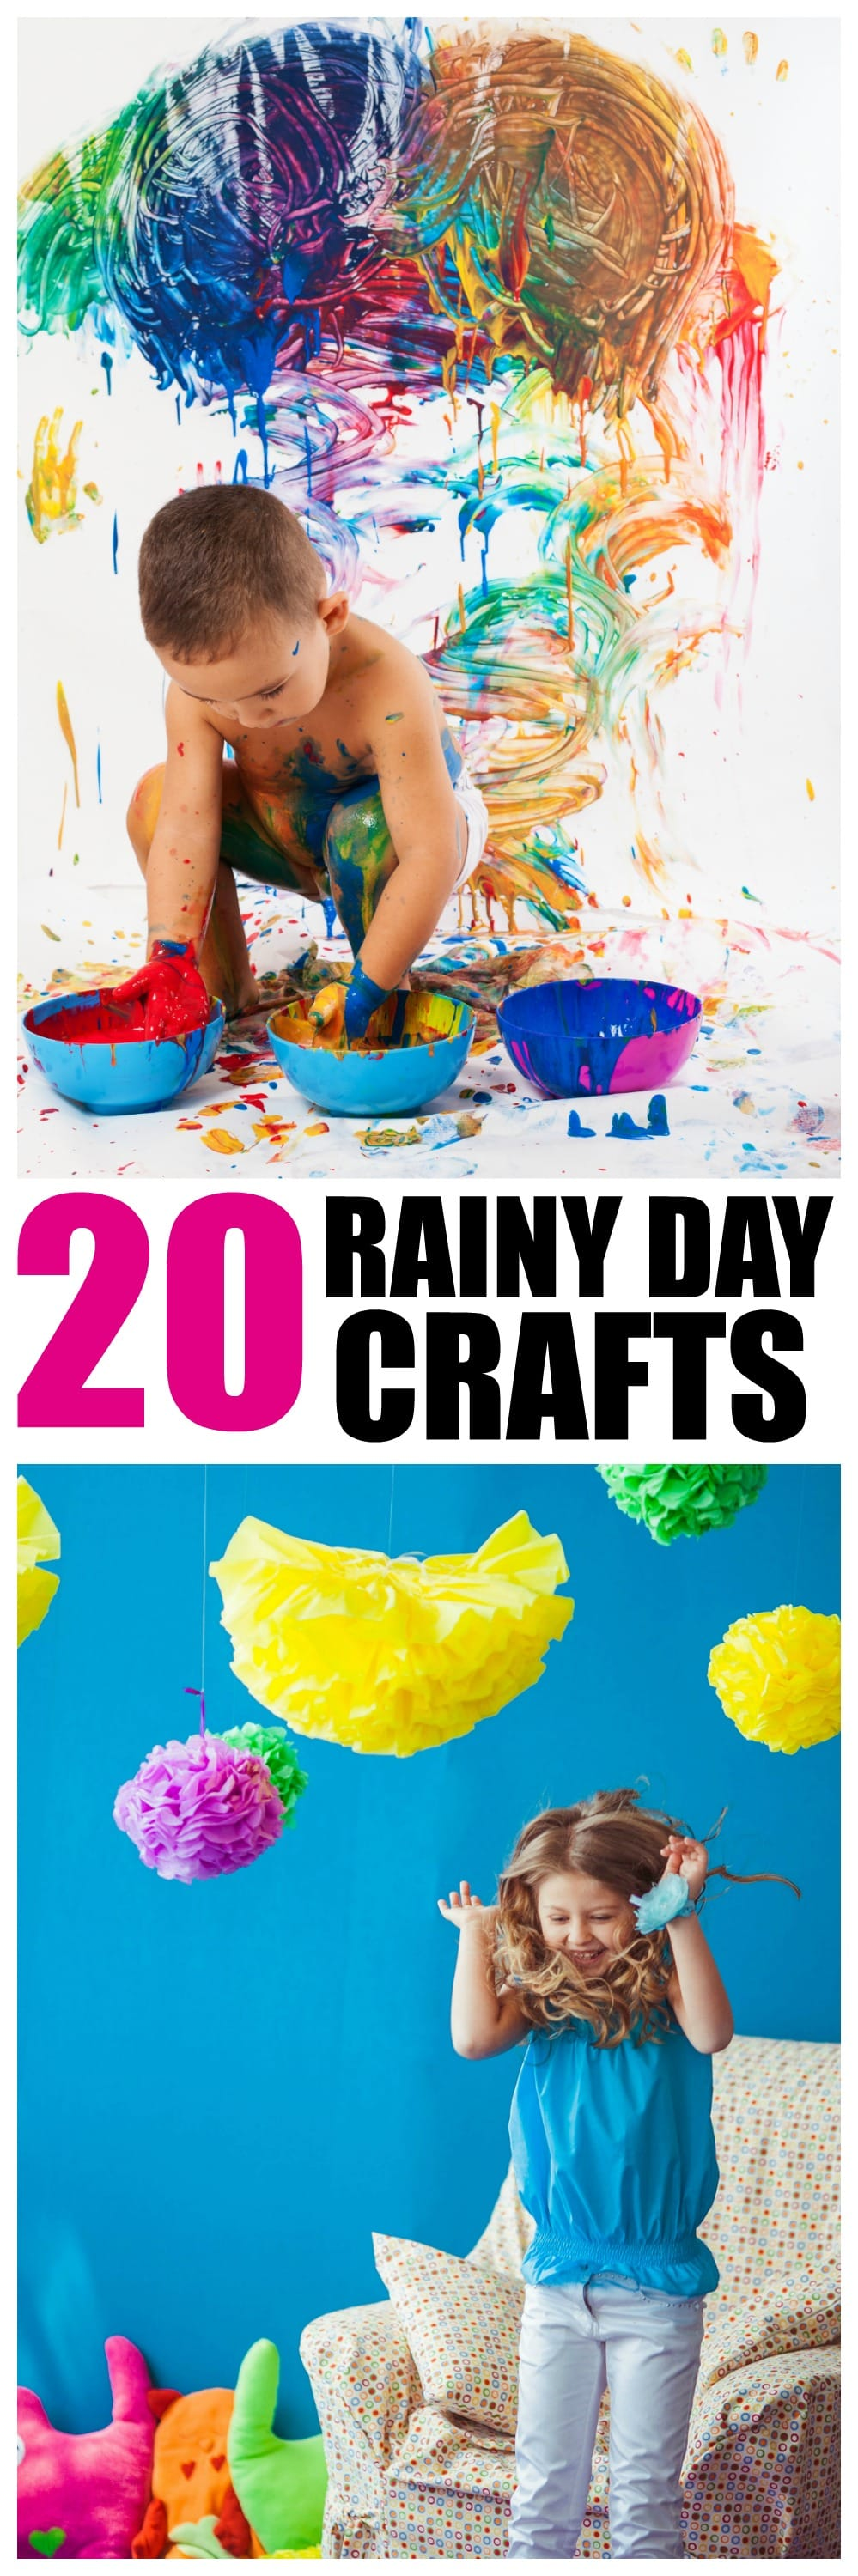 20 Rainy Day Crafts for Kids of all ages - find plenty of reasons to play when its thundering out